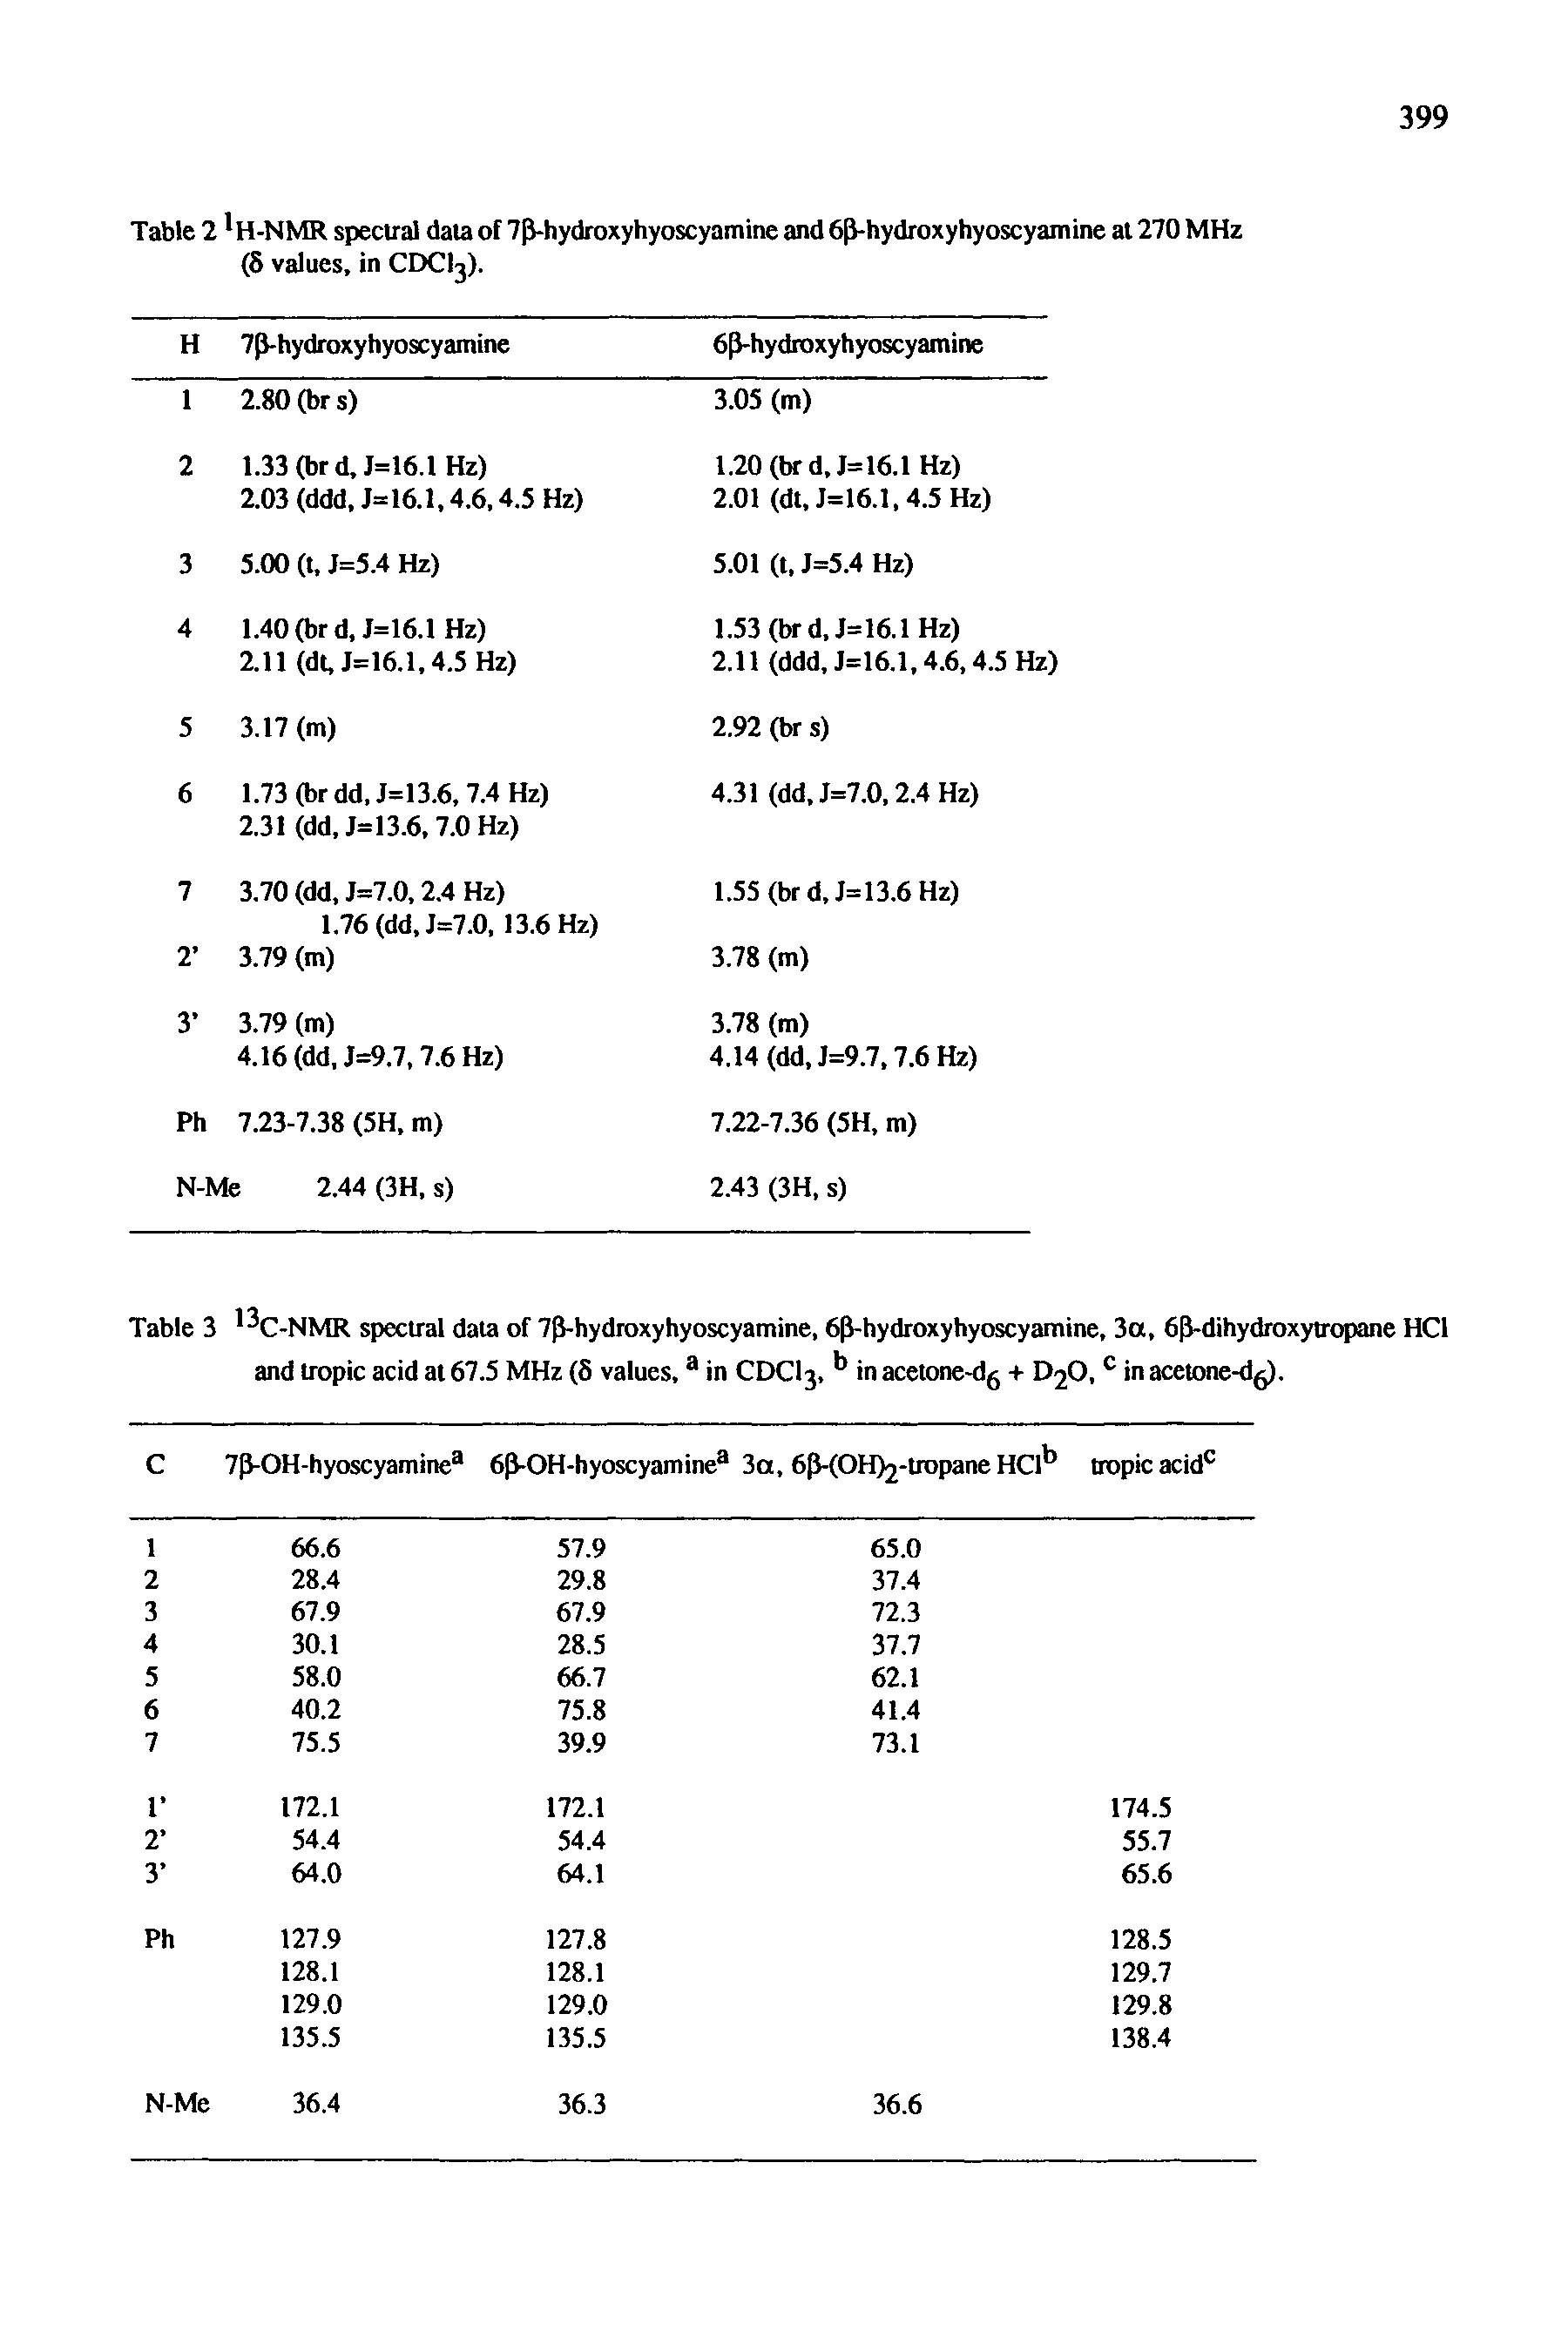 "Table 3 C-NMR spectral data of 7P-hydroxyhyoscyamine, 6p-hydroxyhyoscyamine, 3a, 6P-dihydroxytropane HCl and tropic acid at 67.5 MHz (5 values, in CDCI3, in acetone-dg + D2O, "" in acetone-dg)."